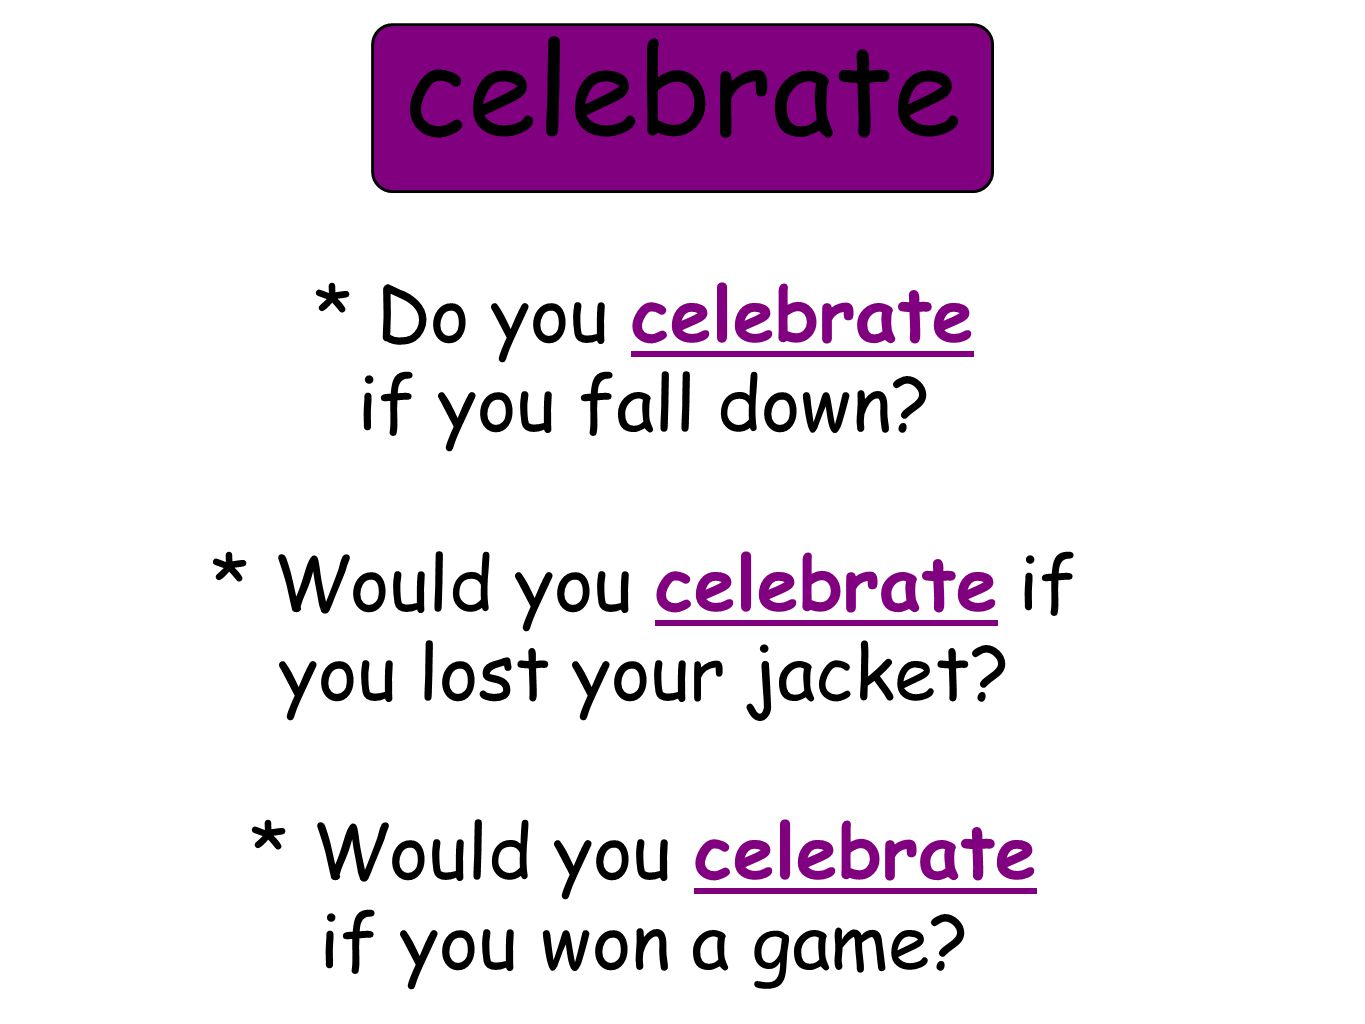 * Do you celebrate if you fall down. * Would you celebrate if you lost your jacket.